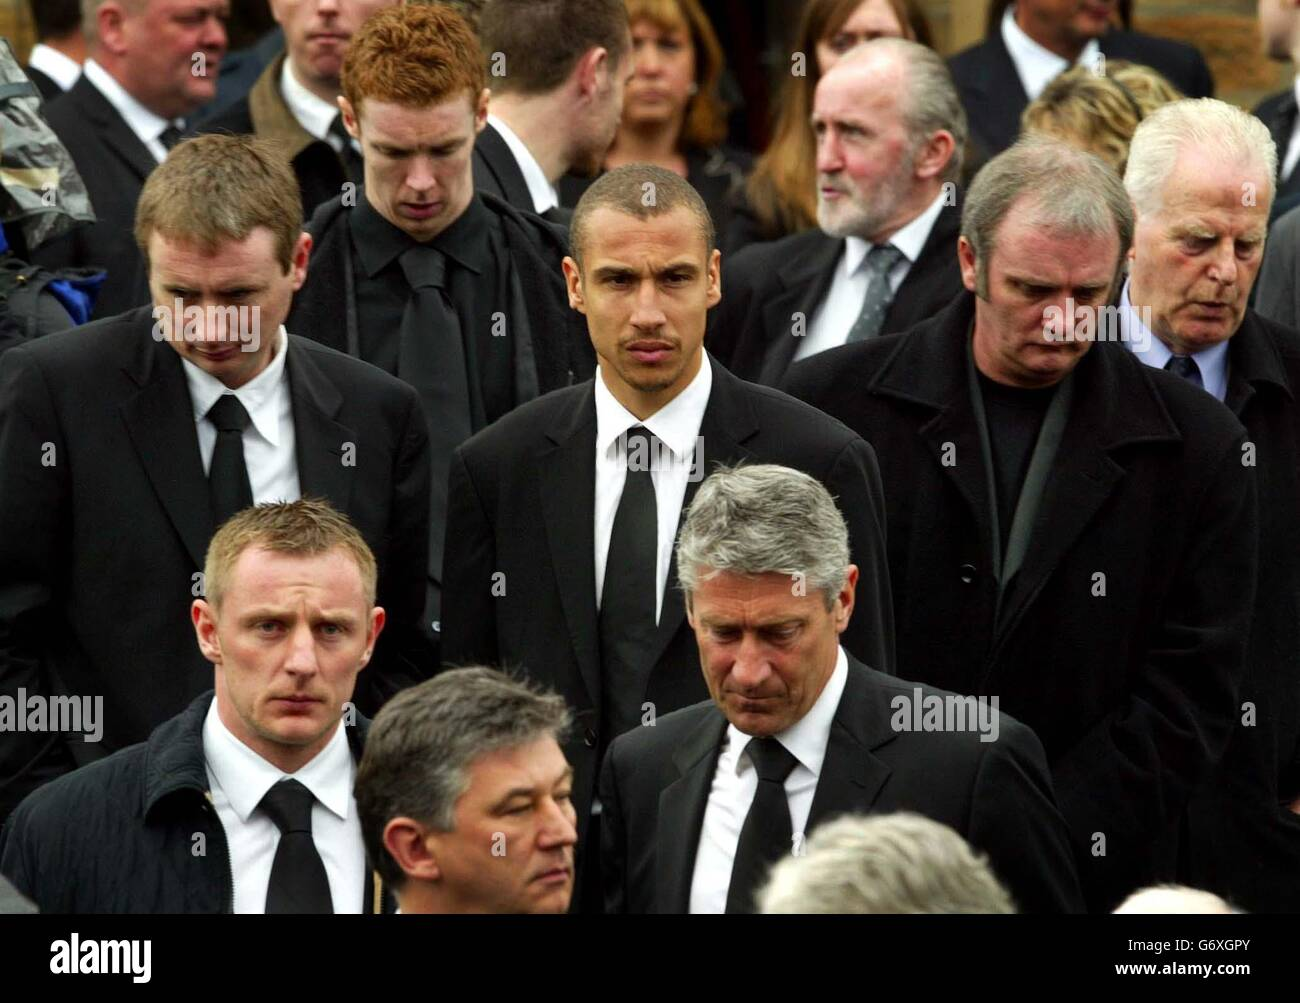 Funeral of Ronnie Simpson - Stock Image